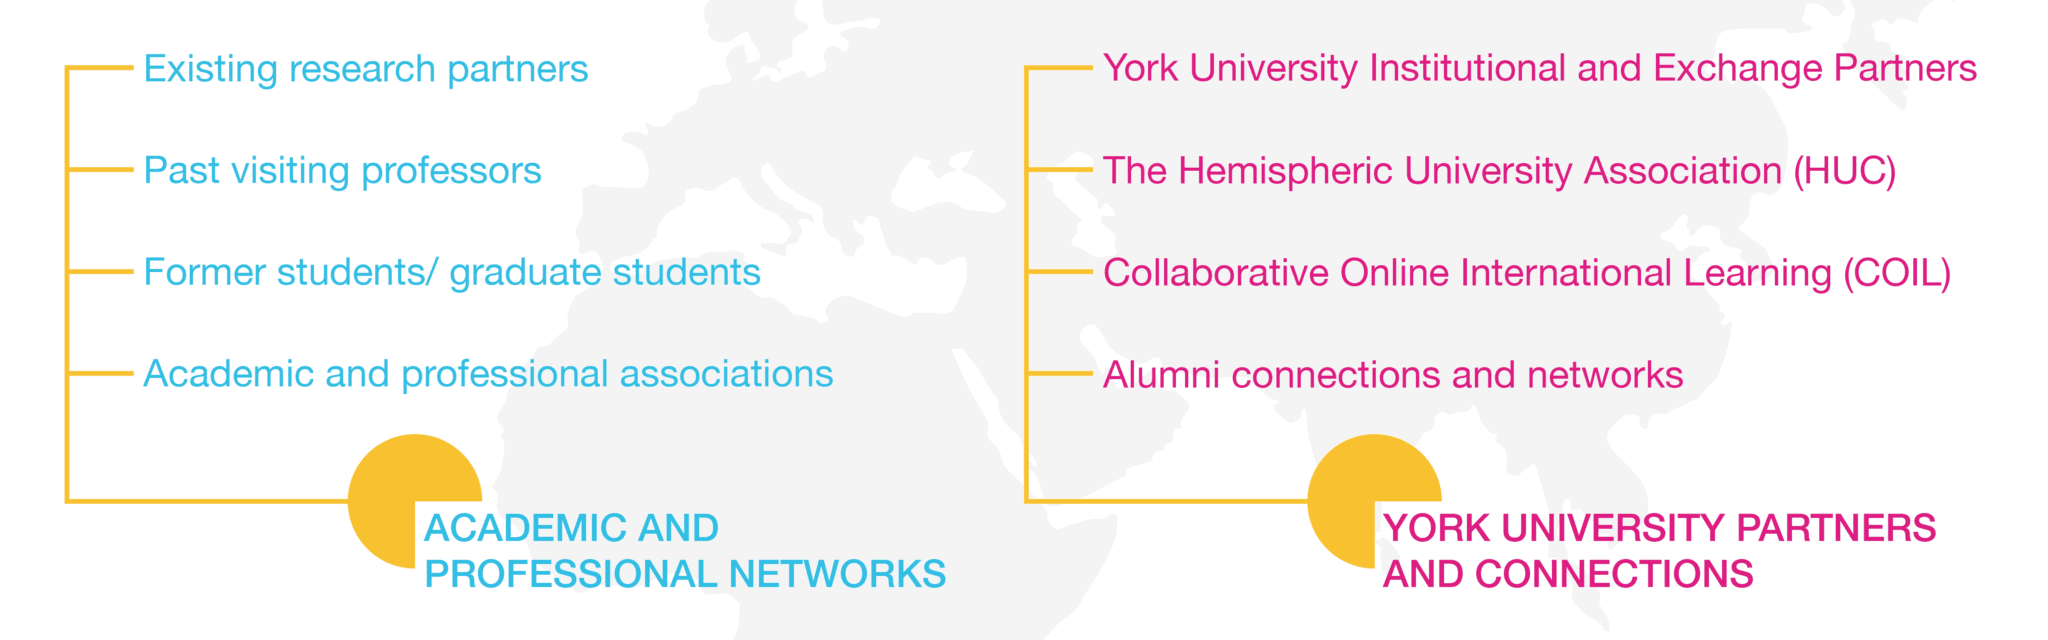 Academic and Professional Networks: Existing research partners, past visiting professors, former student/graduate students, academic and professional associations. York University partners and connections: York University institutional and exchange partners, the Hemispheric University Association (HUC), Collaborative Online International Learning (COIL), and alumni connections and networks.